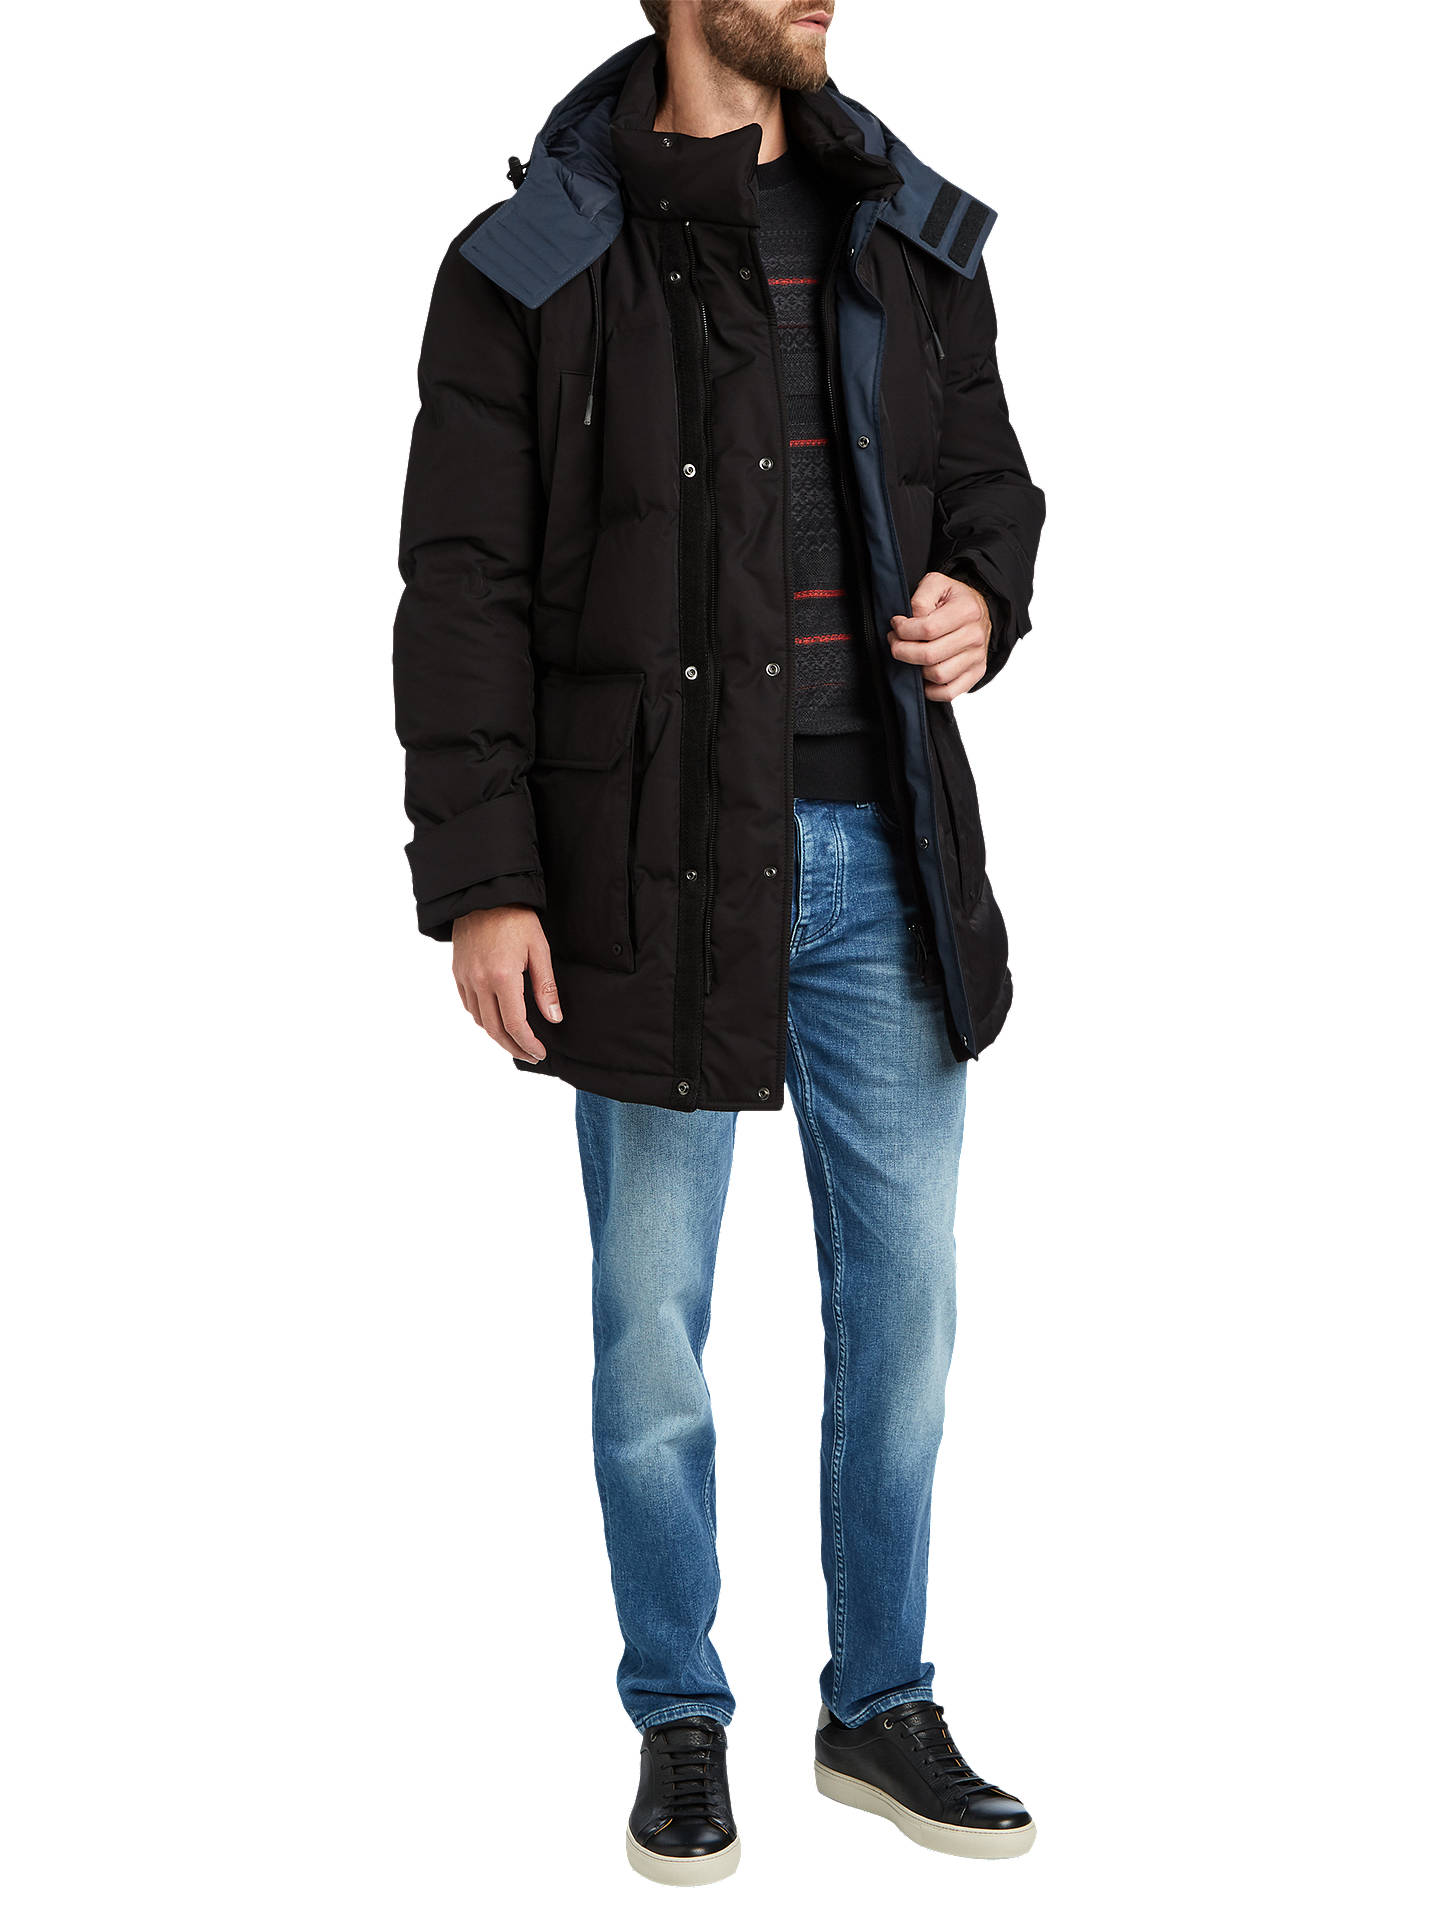 BuyBOSS Onek Hooded Parka Jacket, Black, 38R Online at johnlewis.com